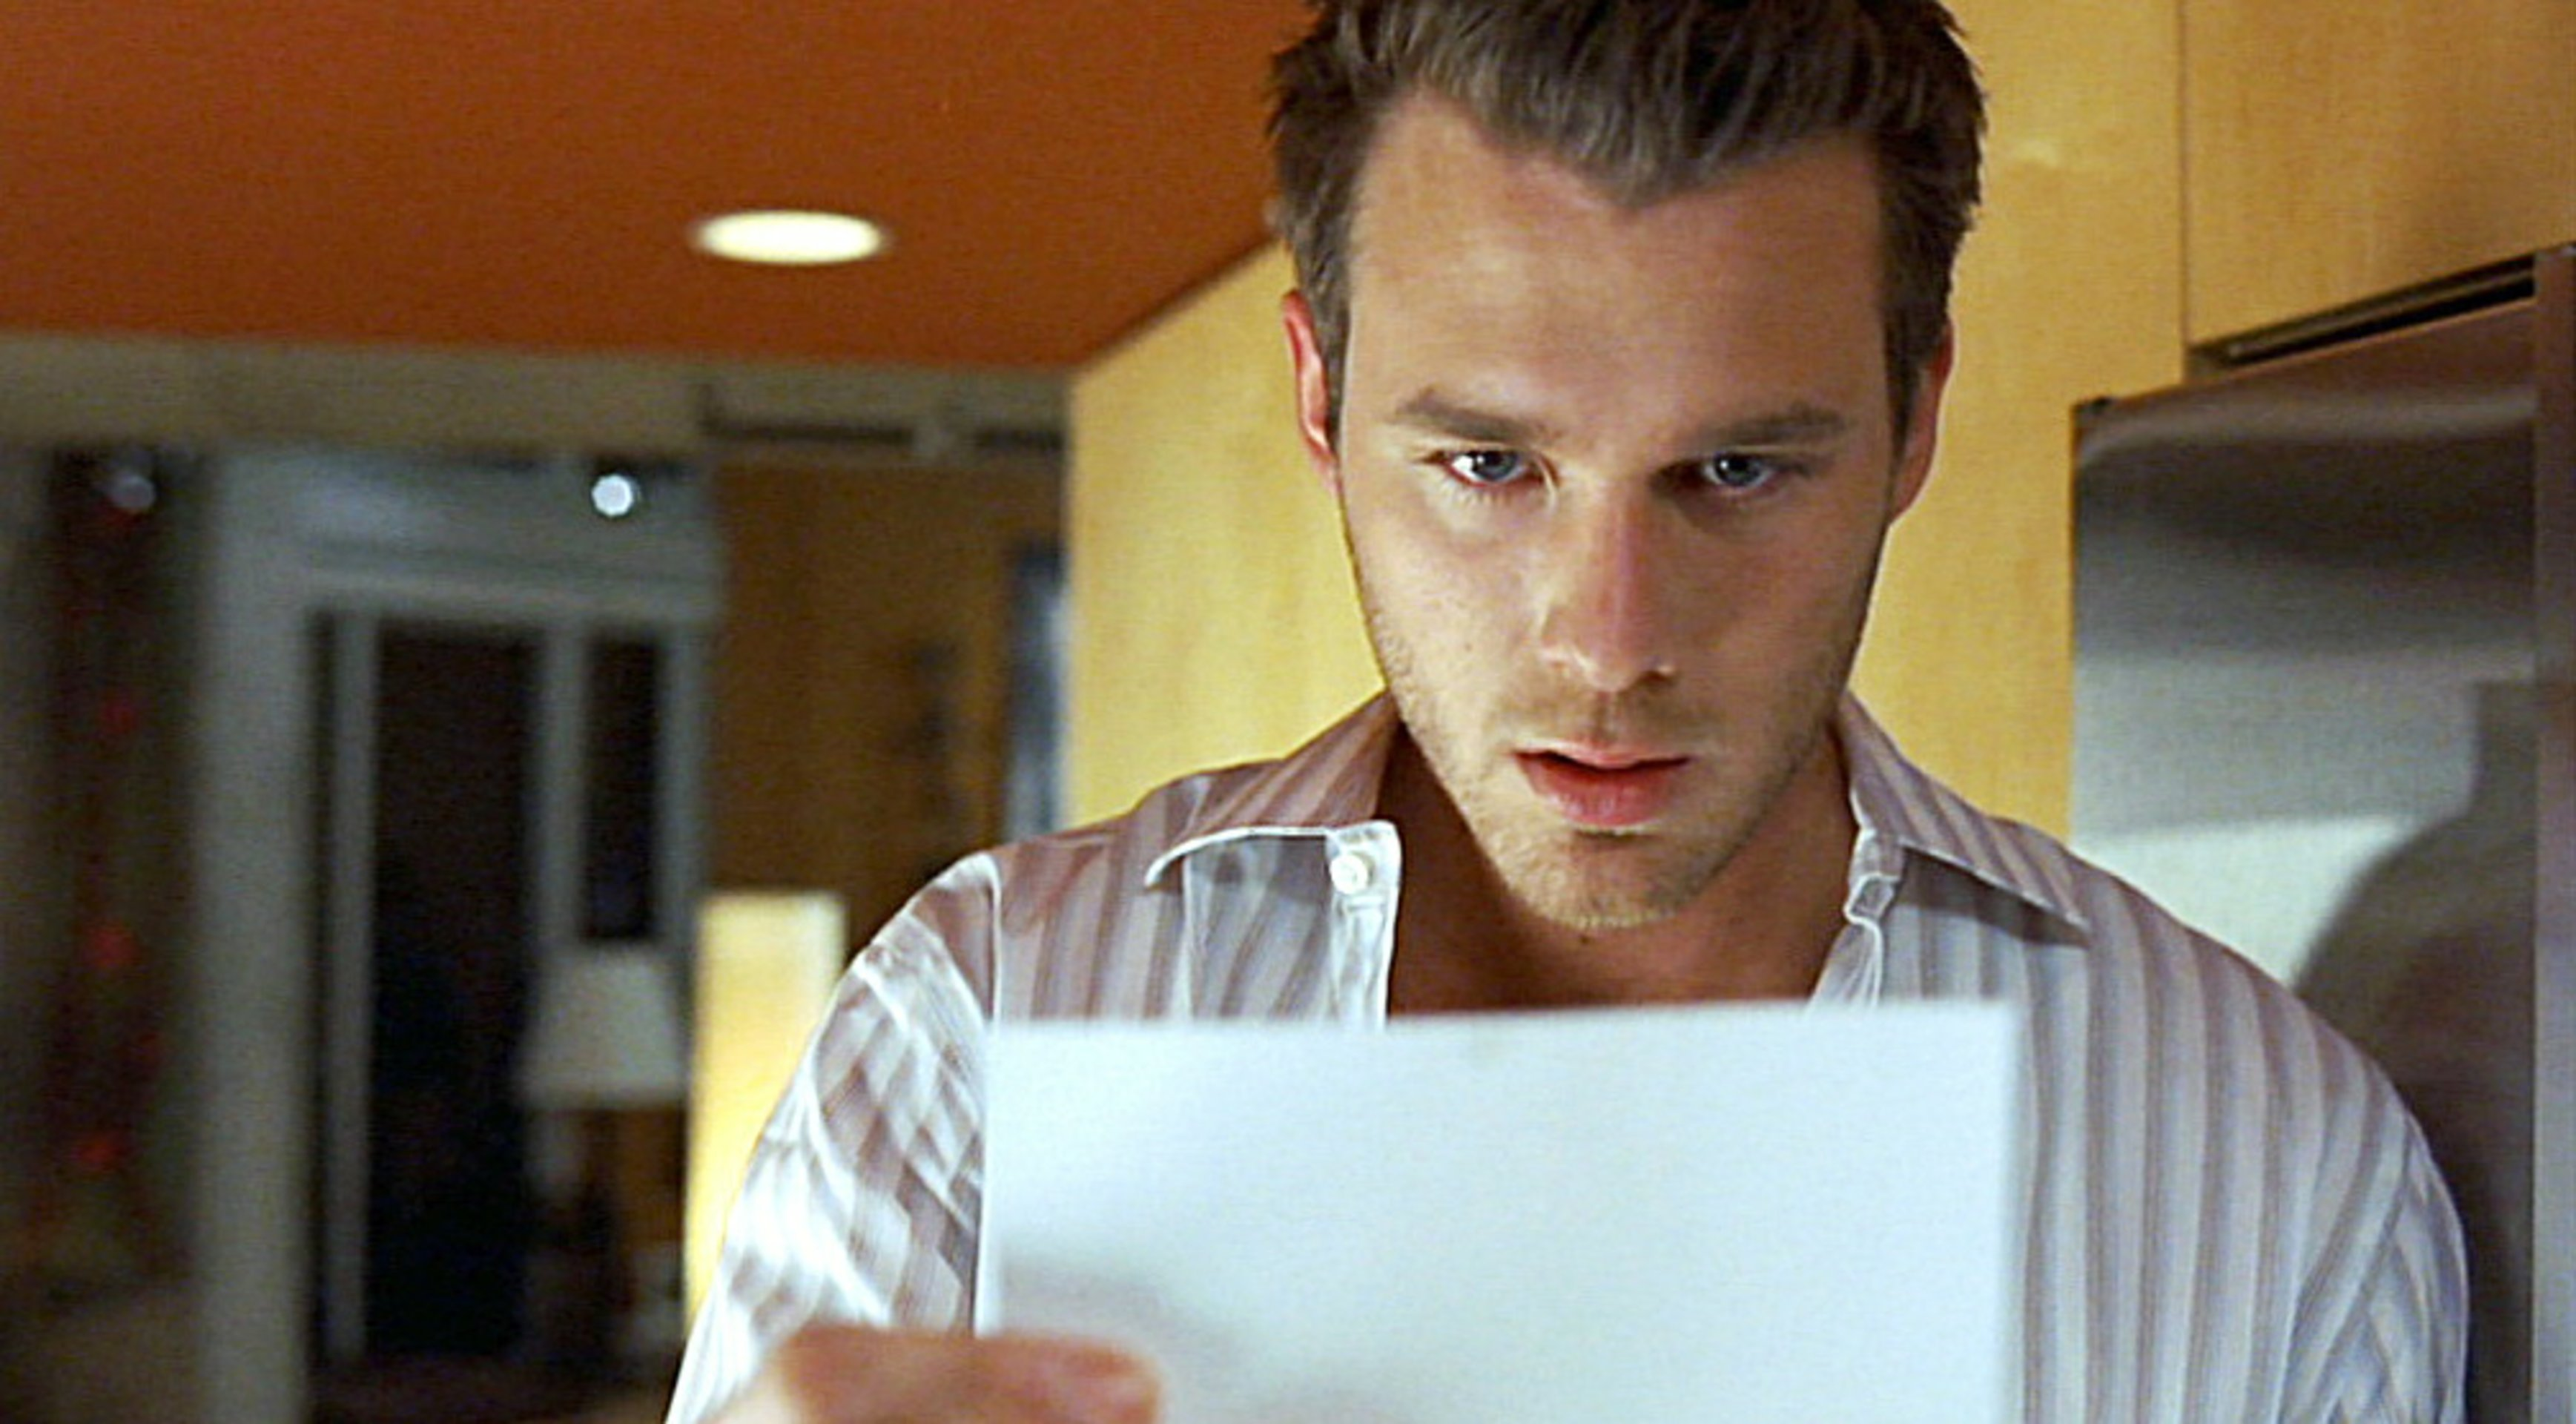 Eric Lively is thown back in time to alter key events of his own life in The Butterfly Effect 2 (2006)